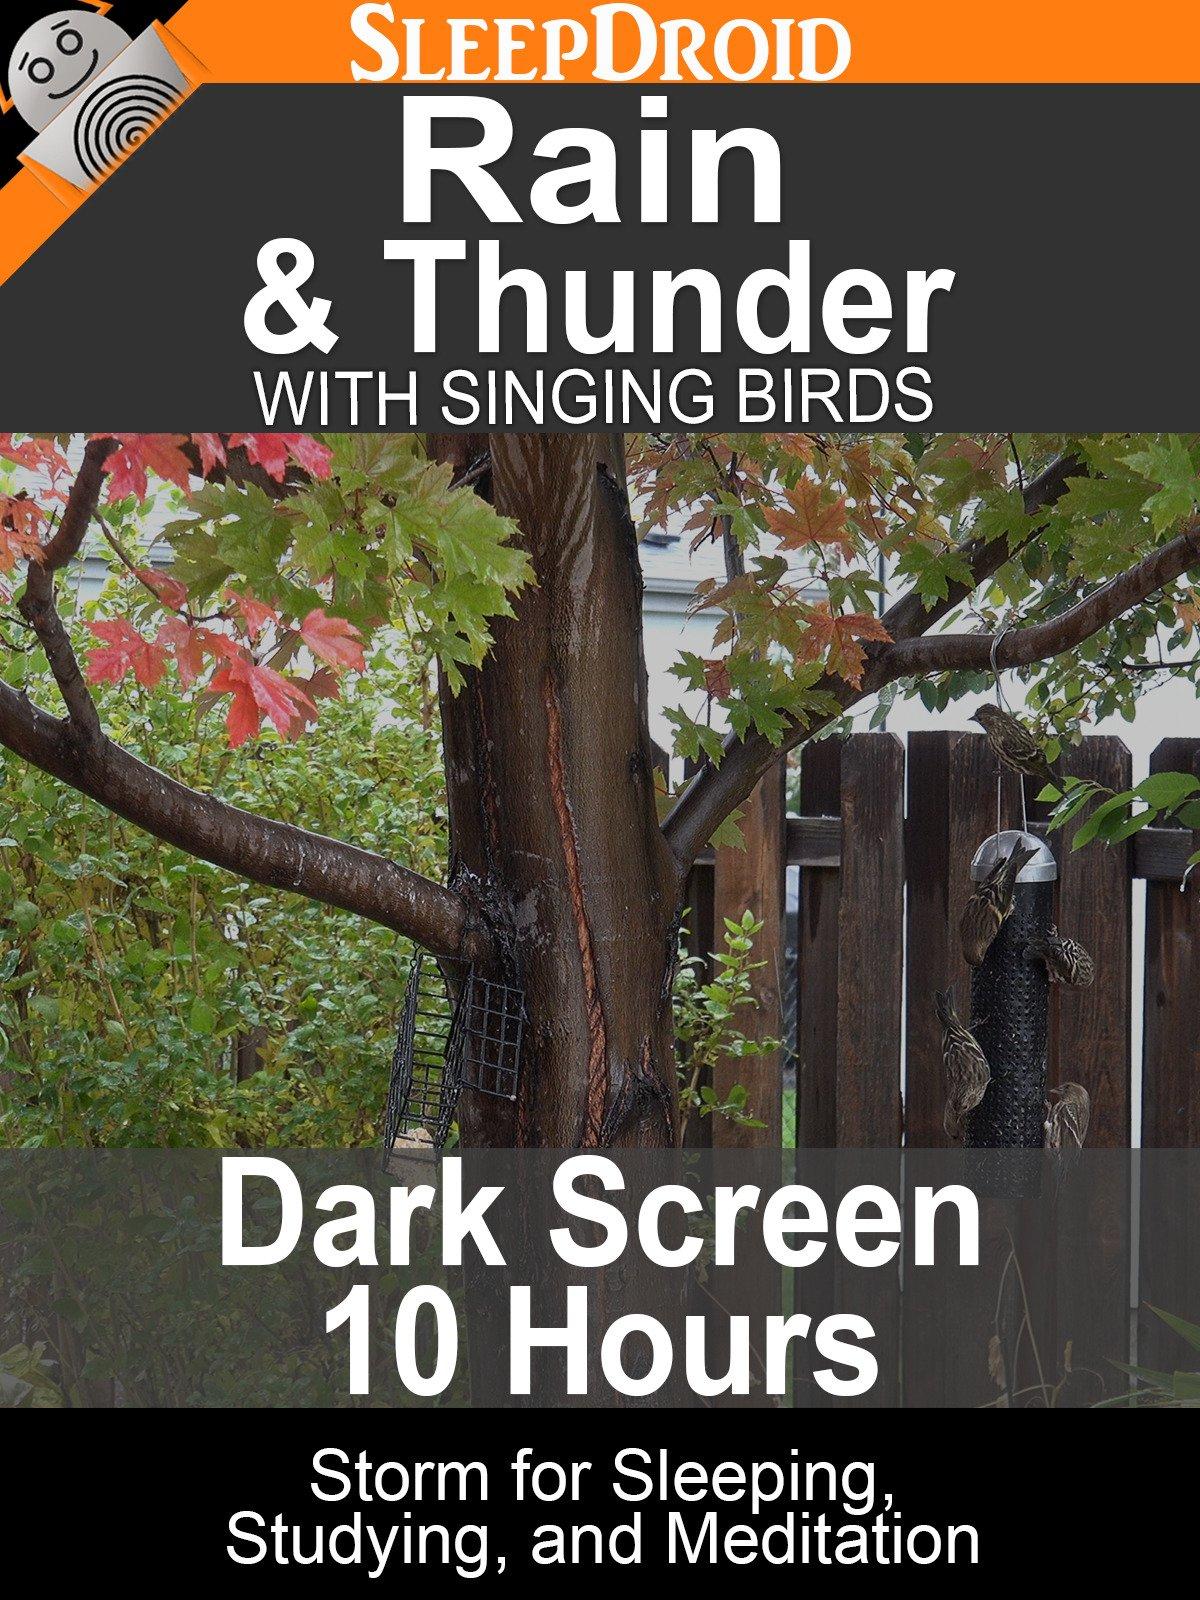 Rain and Thunder with Singing Birds: Dark Screen 10 hours Storm for Sleeping, Studying, and Meditation